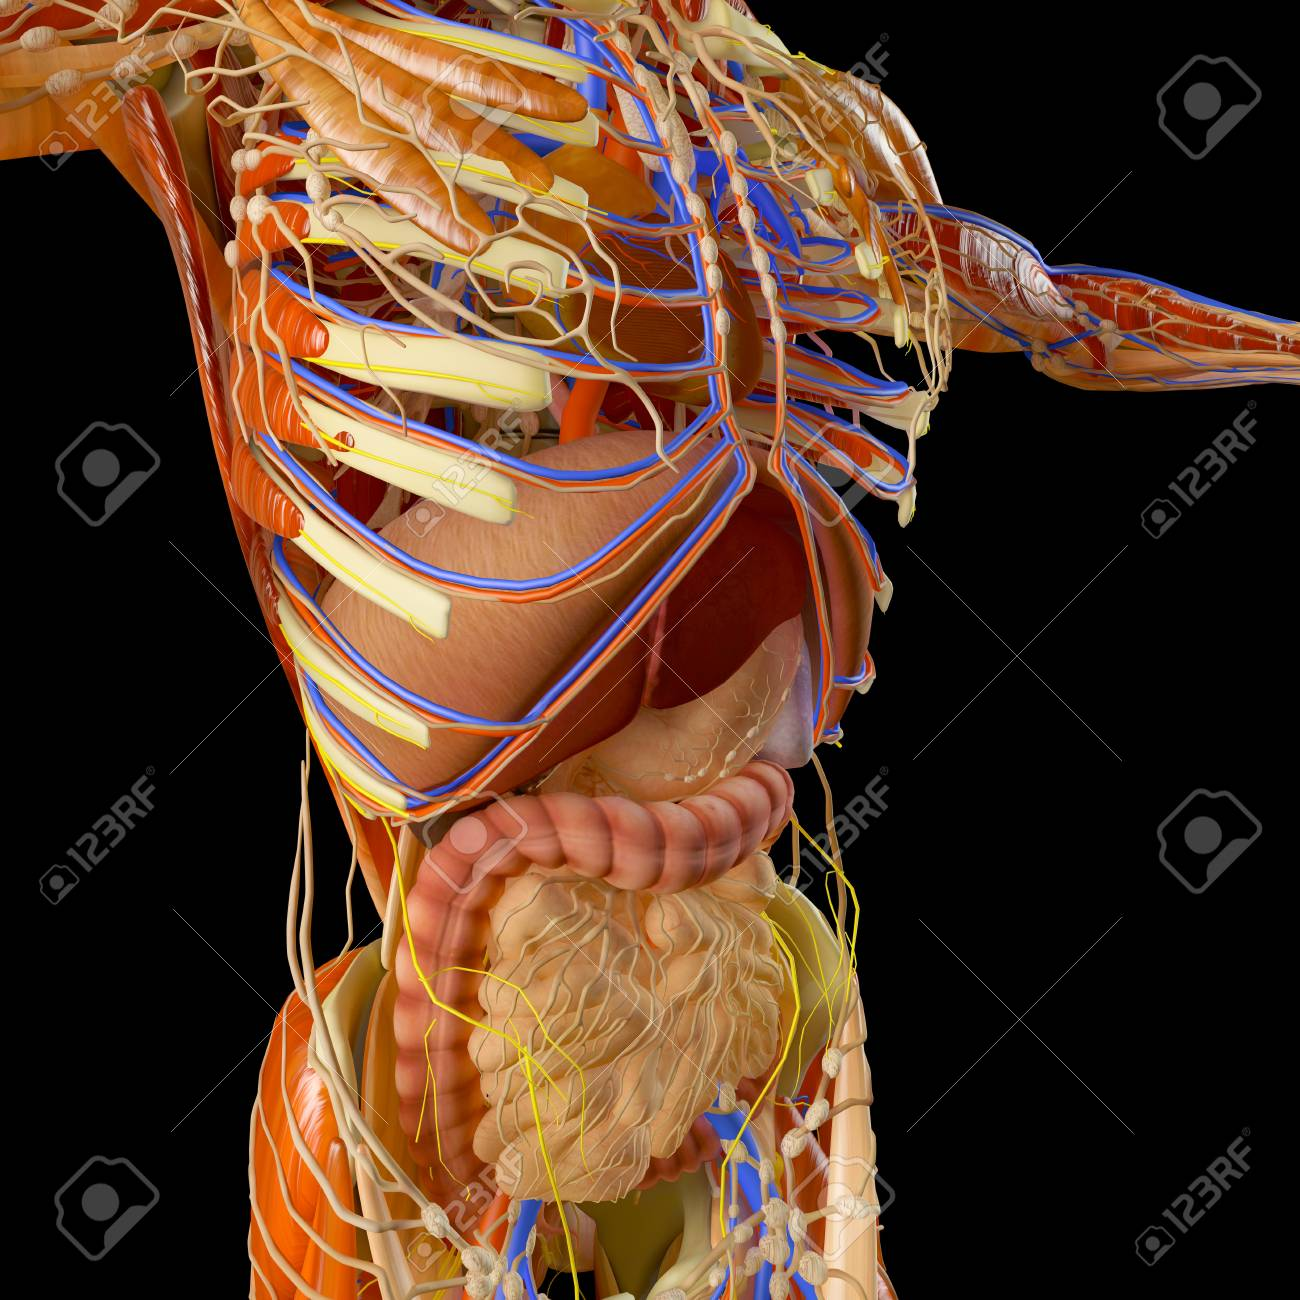 Human Body Muscular System Person Digestive System Anatomy Stock